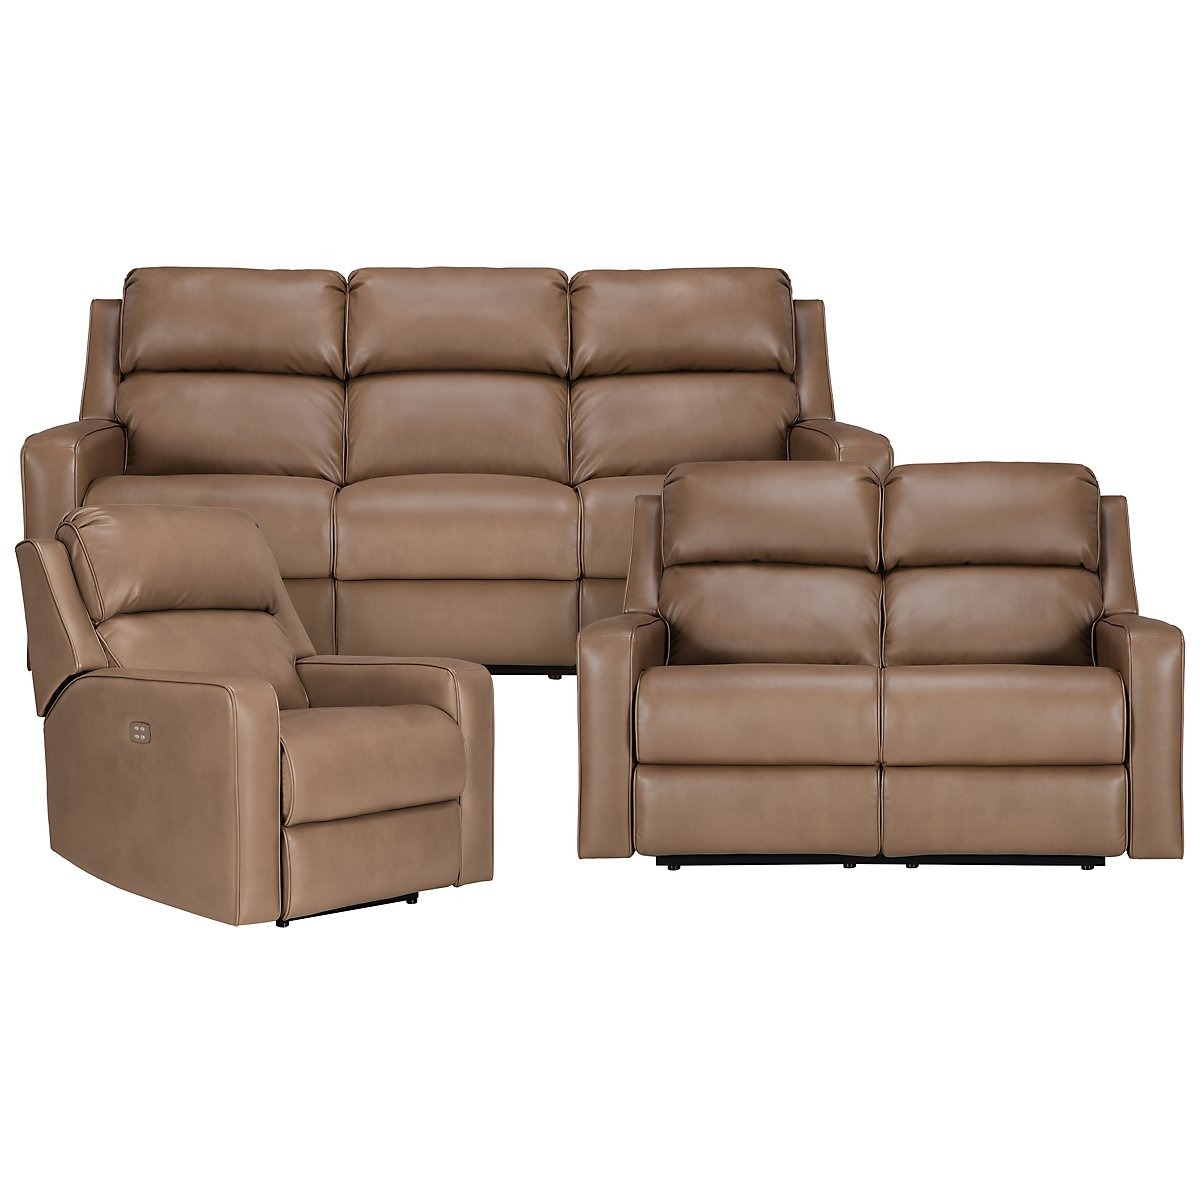 Rocco Dark Taupe Microfiber Power Reclining Living Room